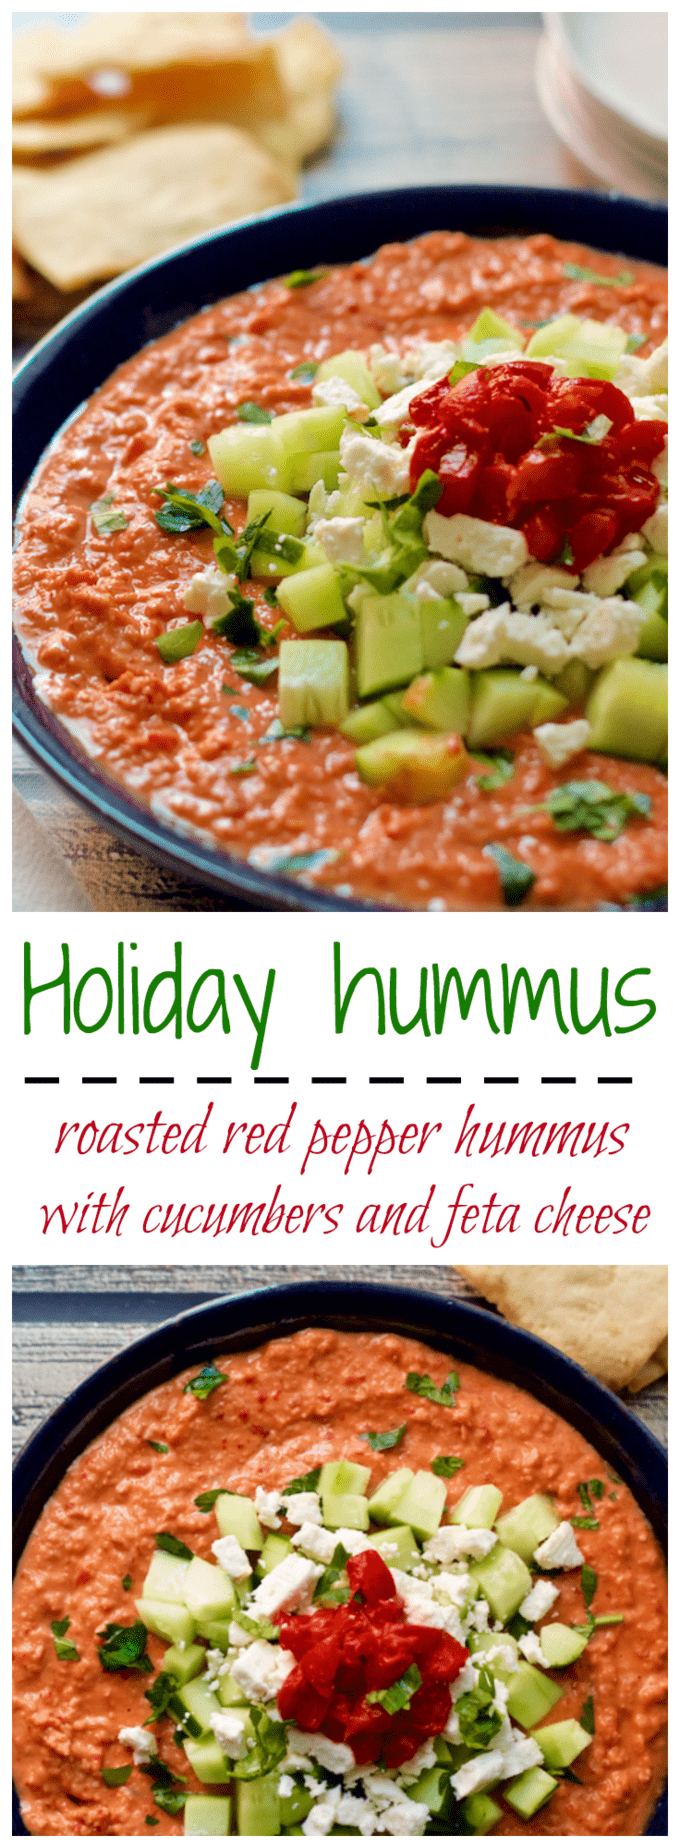 Holiday hummus has a roasted red pepper hummus base that gets dressed up with chopped cucumber and feta cheese for an easy, but fancy, holiday appetizer! #hummus #appetizers #holidays #holidayfood #partyfood #cocktailparty #holidayparty